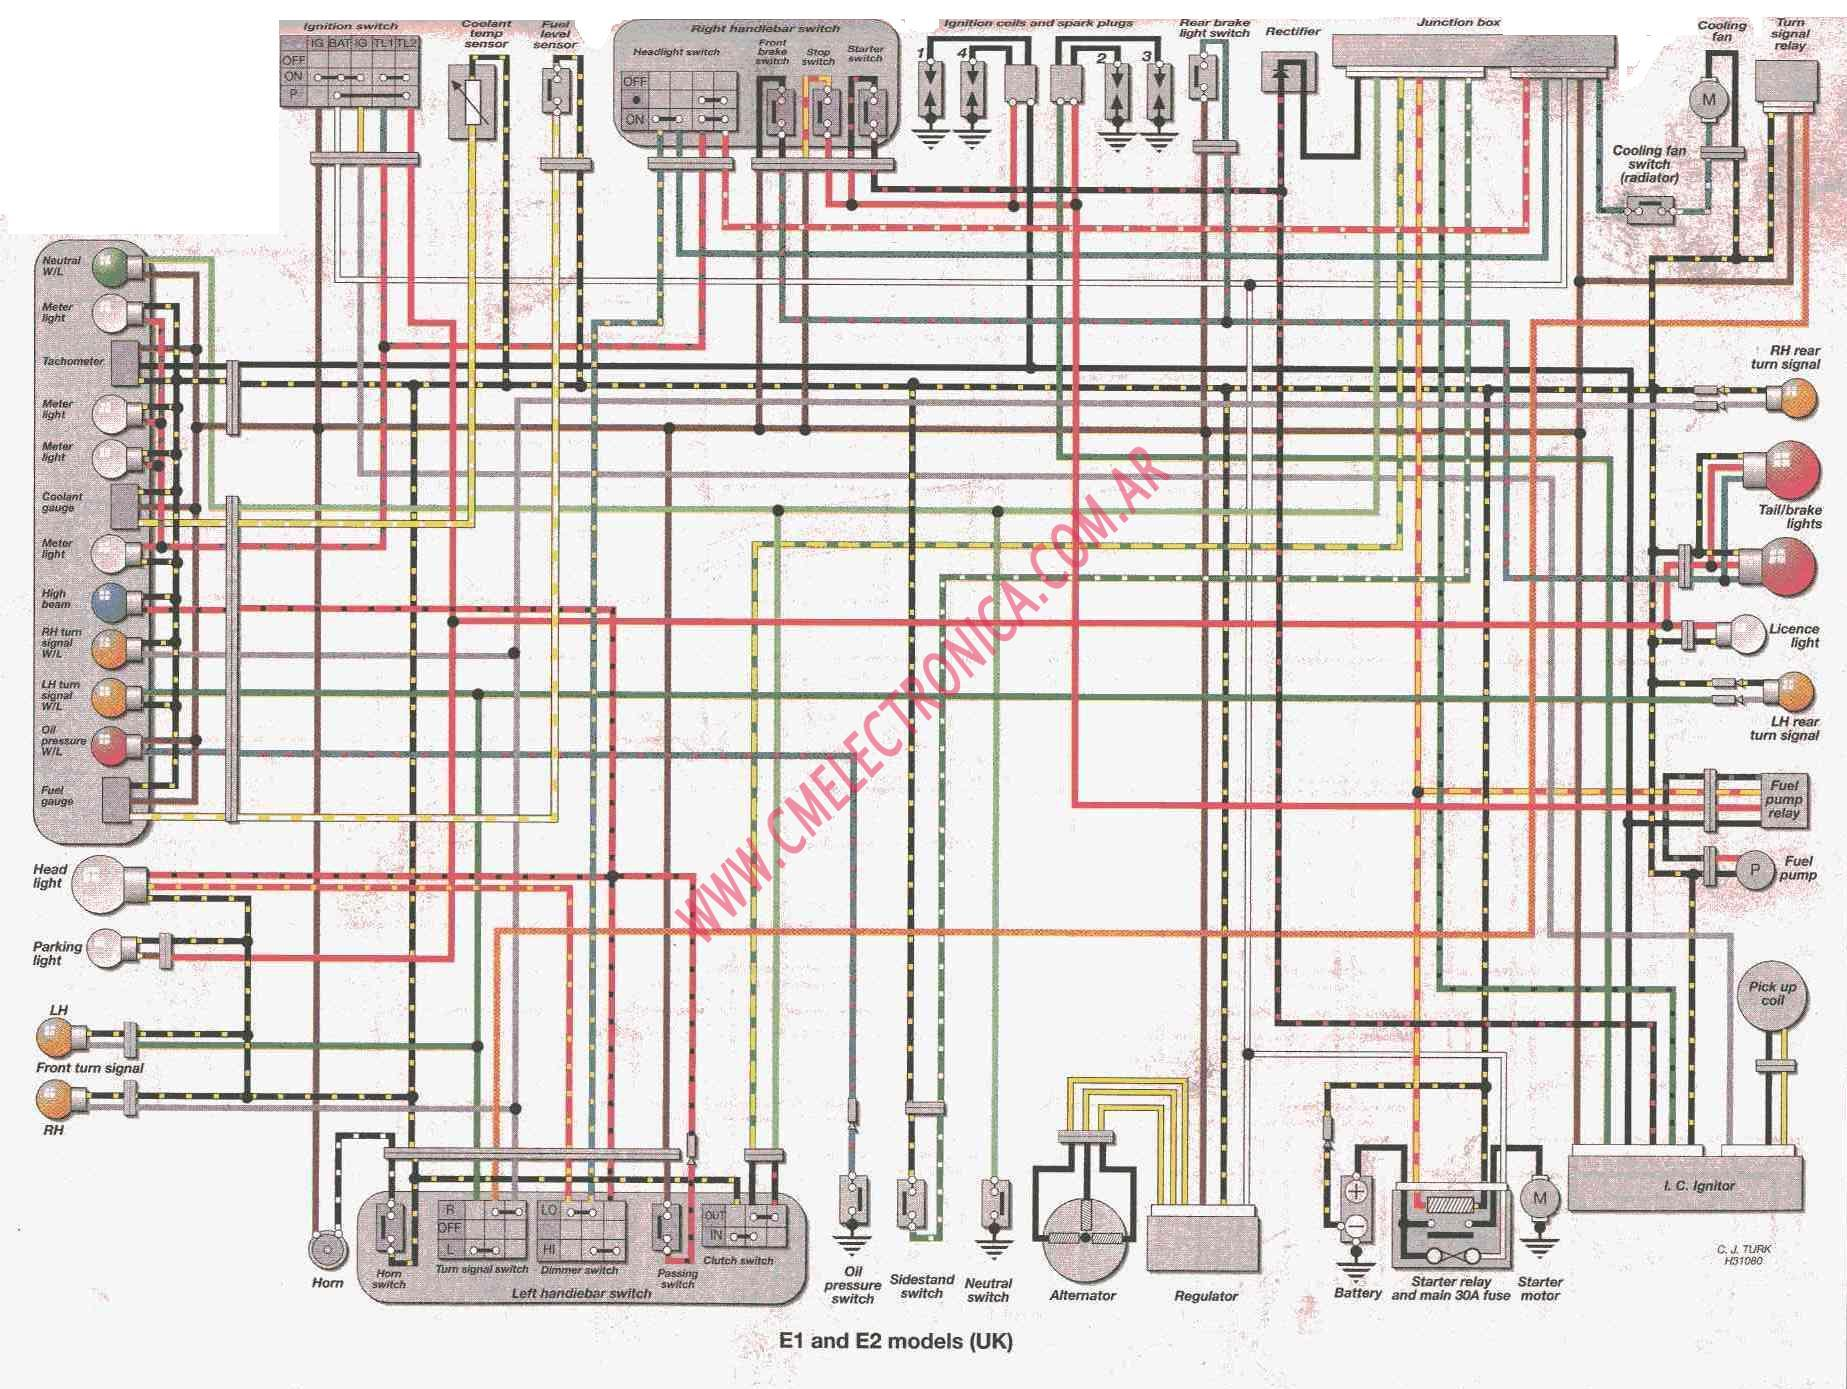 Wiring Diagram Of Mio Sporty : Yzf r wiring diagram images